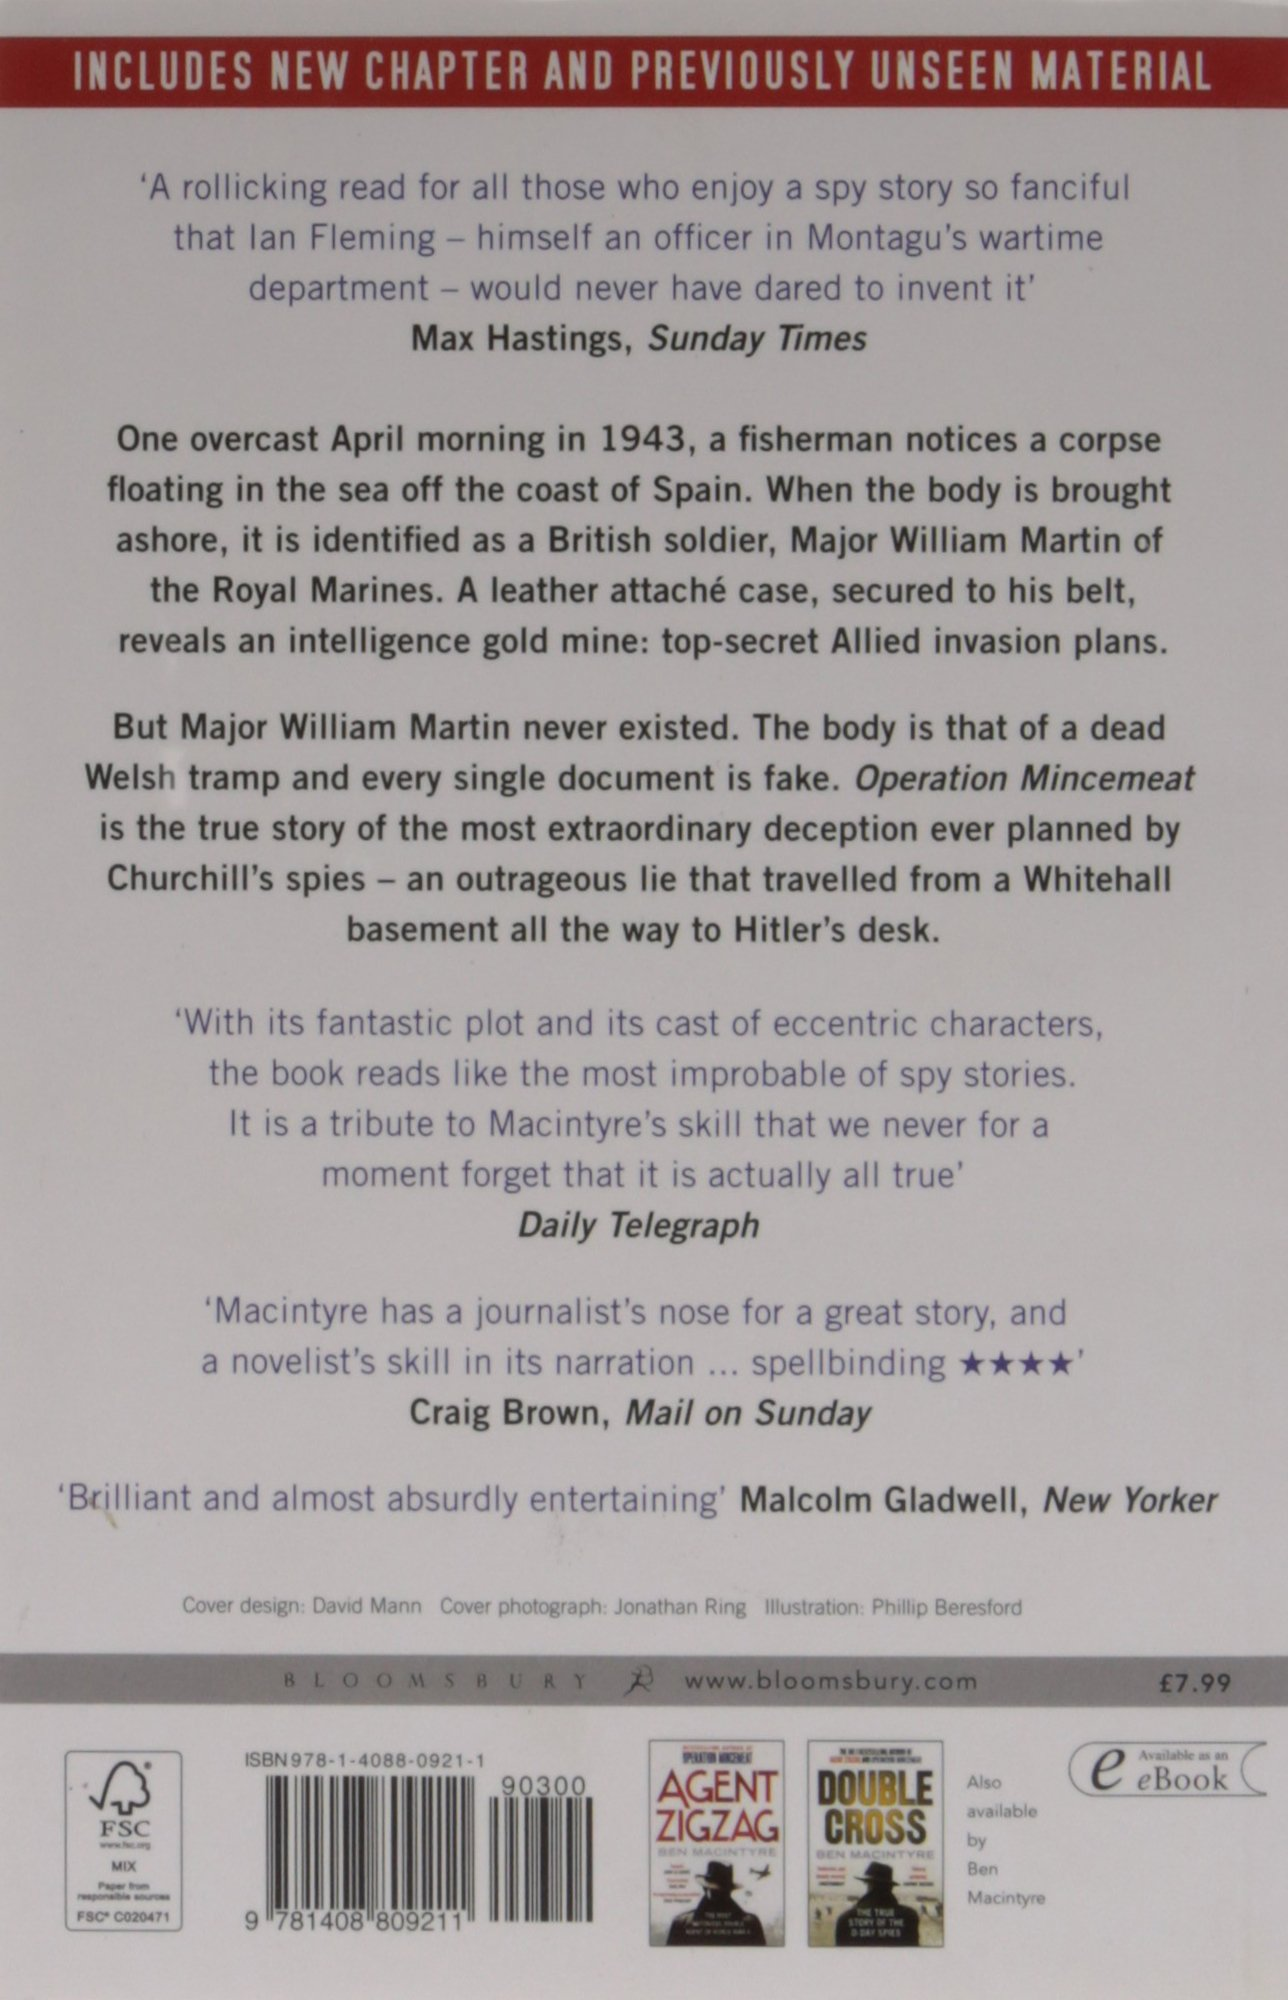 Operation Mincemeat: The True Spy Story That Changed The Course Of World  War Ii: Amazon: Ben Macintyre: 9781408809211: Books